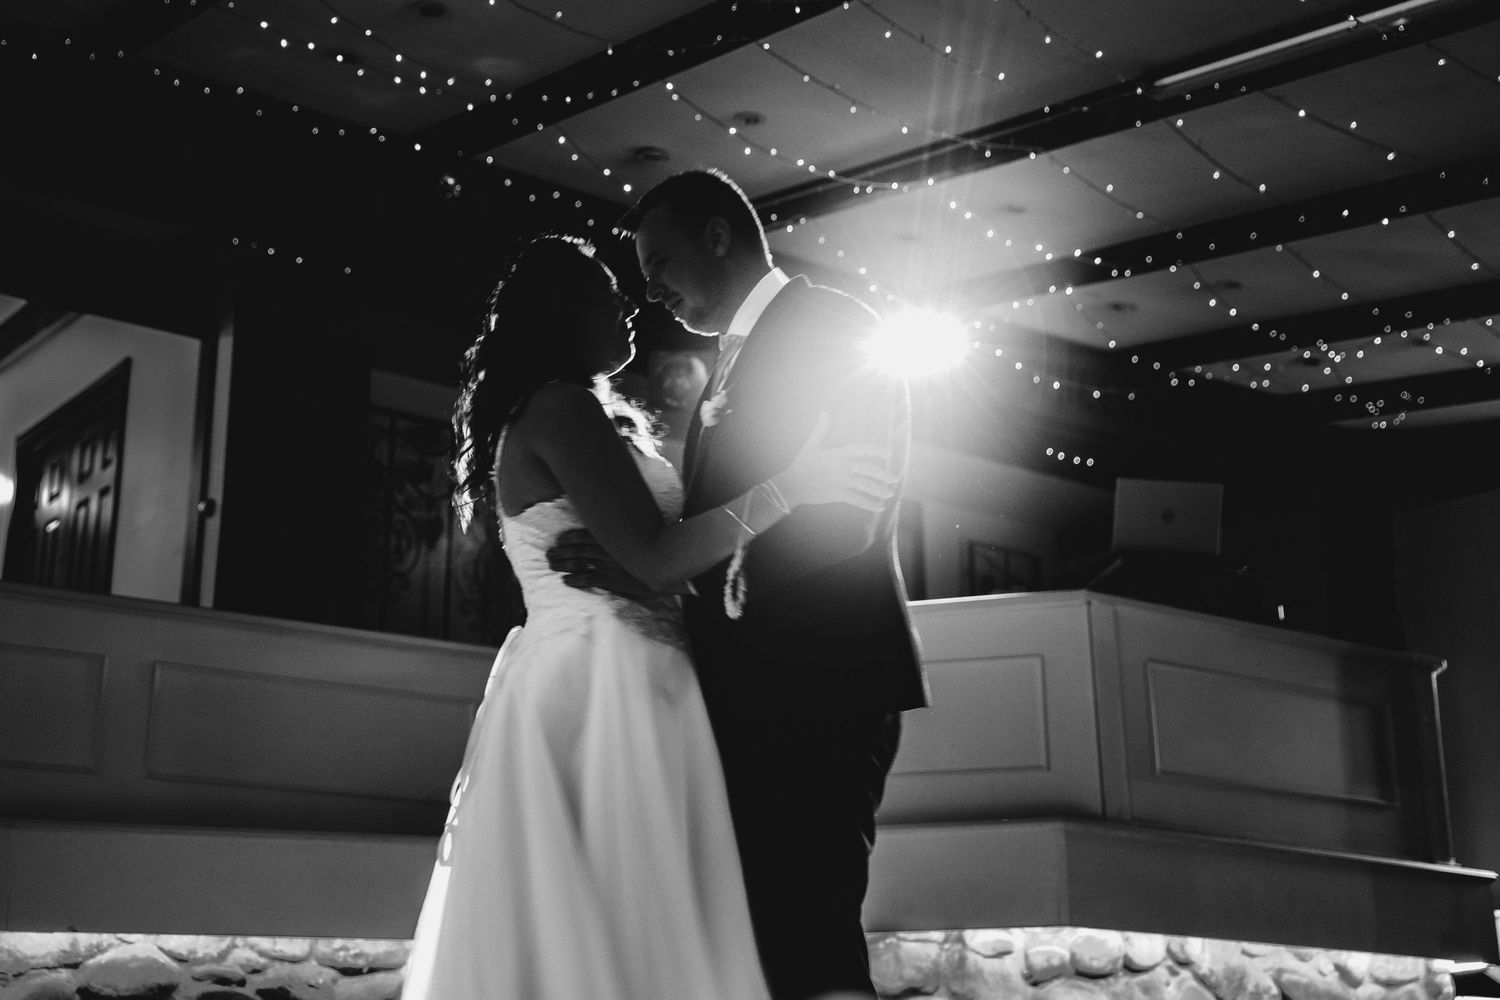 Bride and groom first dance in spotlight chateau wyuna melbourne wedding